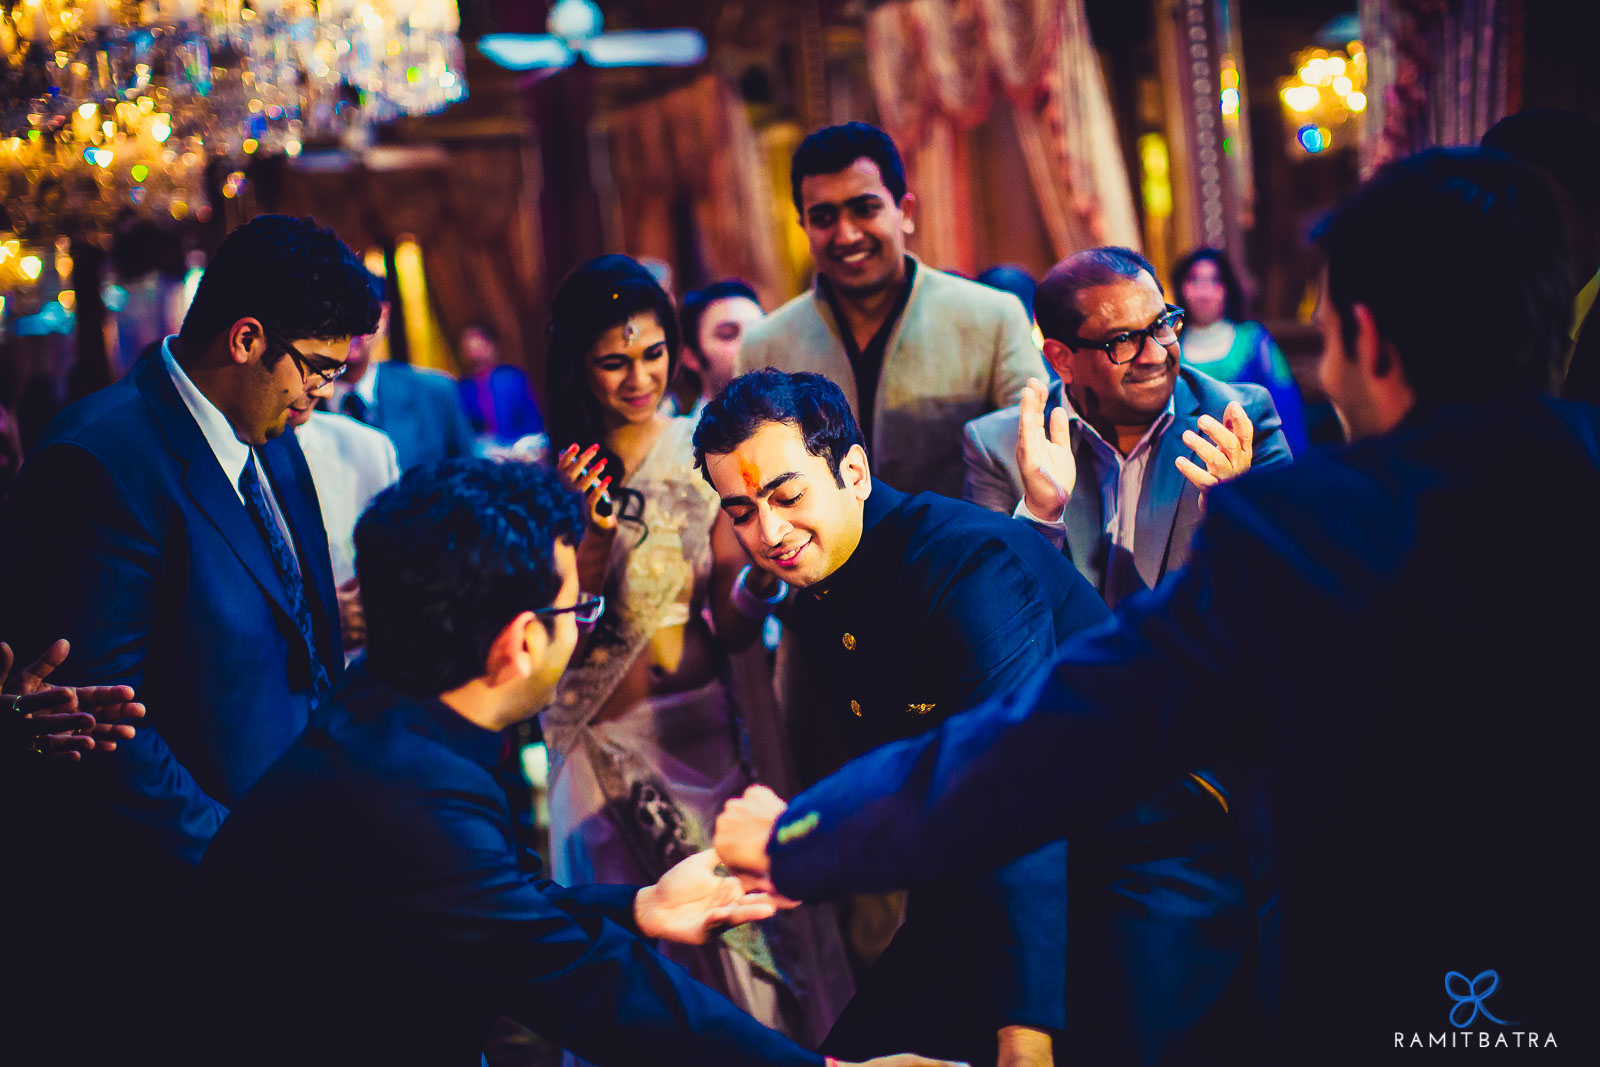 Wedding-Photographer-Hyderabad-India-RamitBatra_30